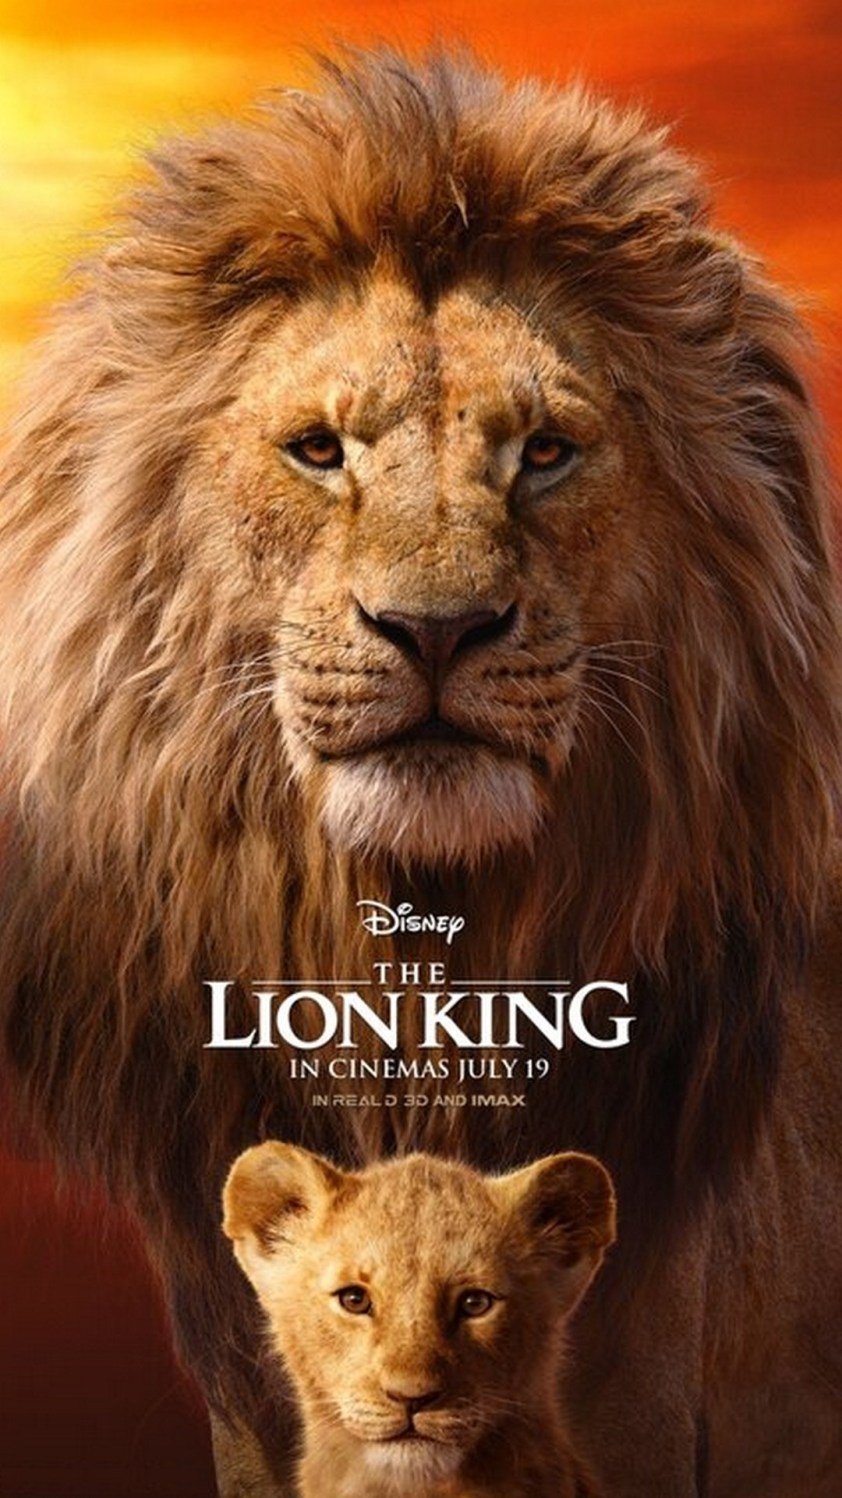 Image result for lion king movie poster